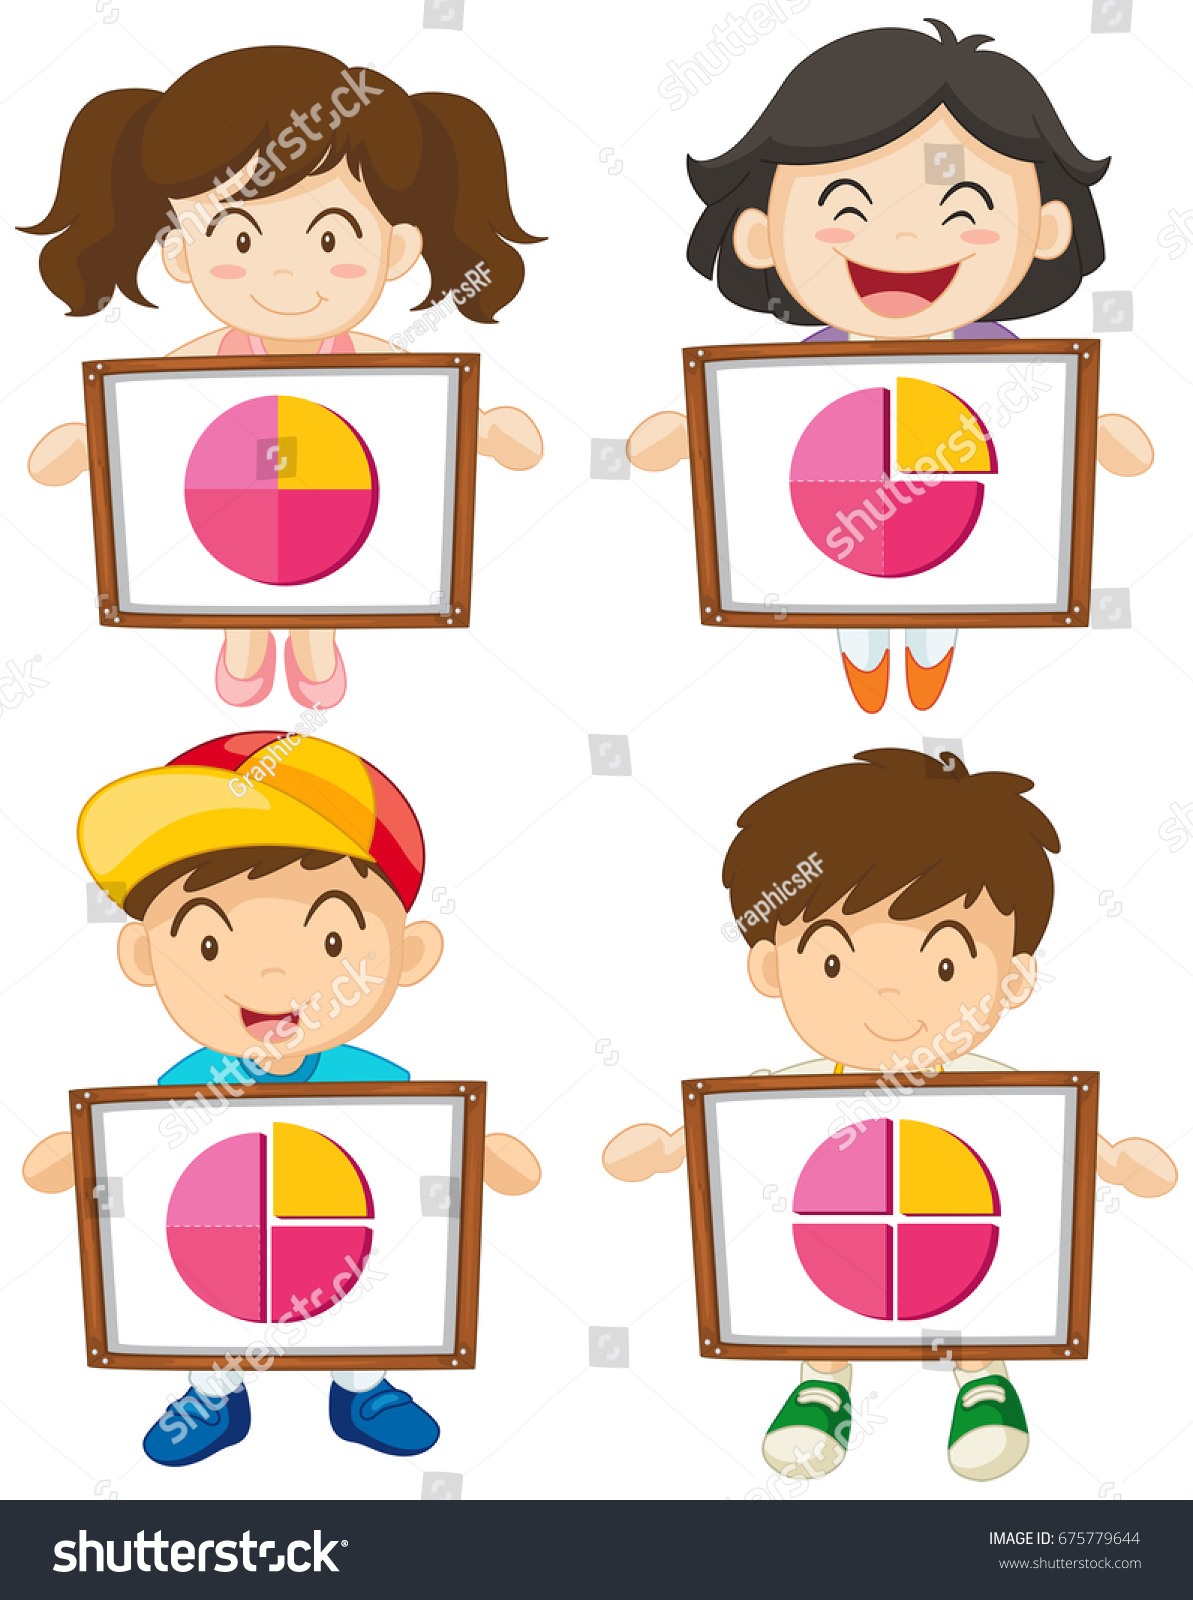 four kids holding sign piecharts illustration stock vector (royalty